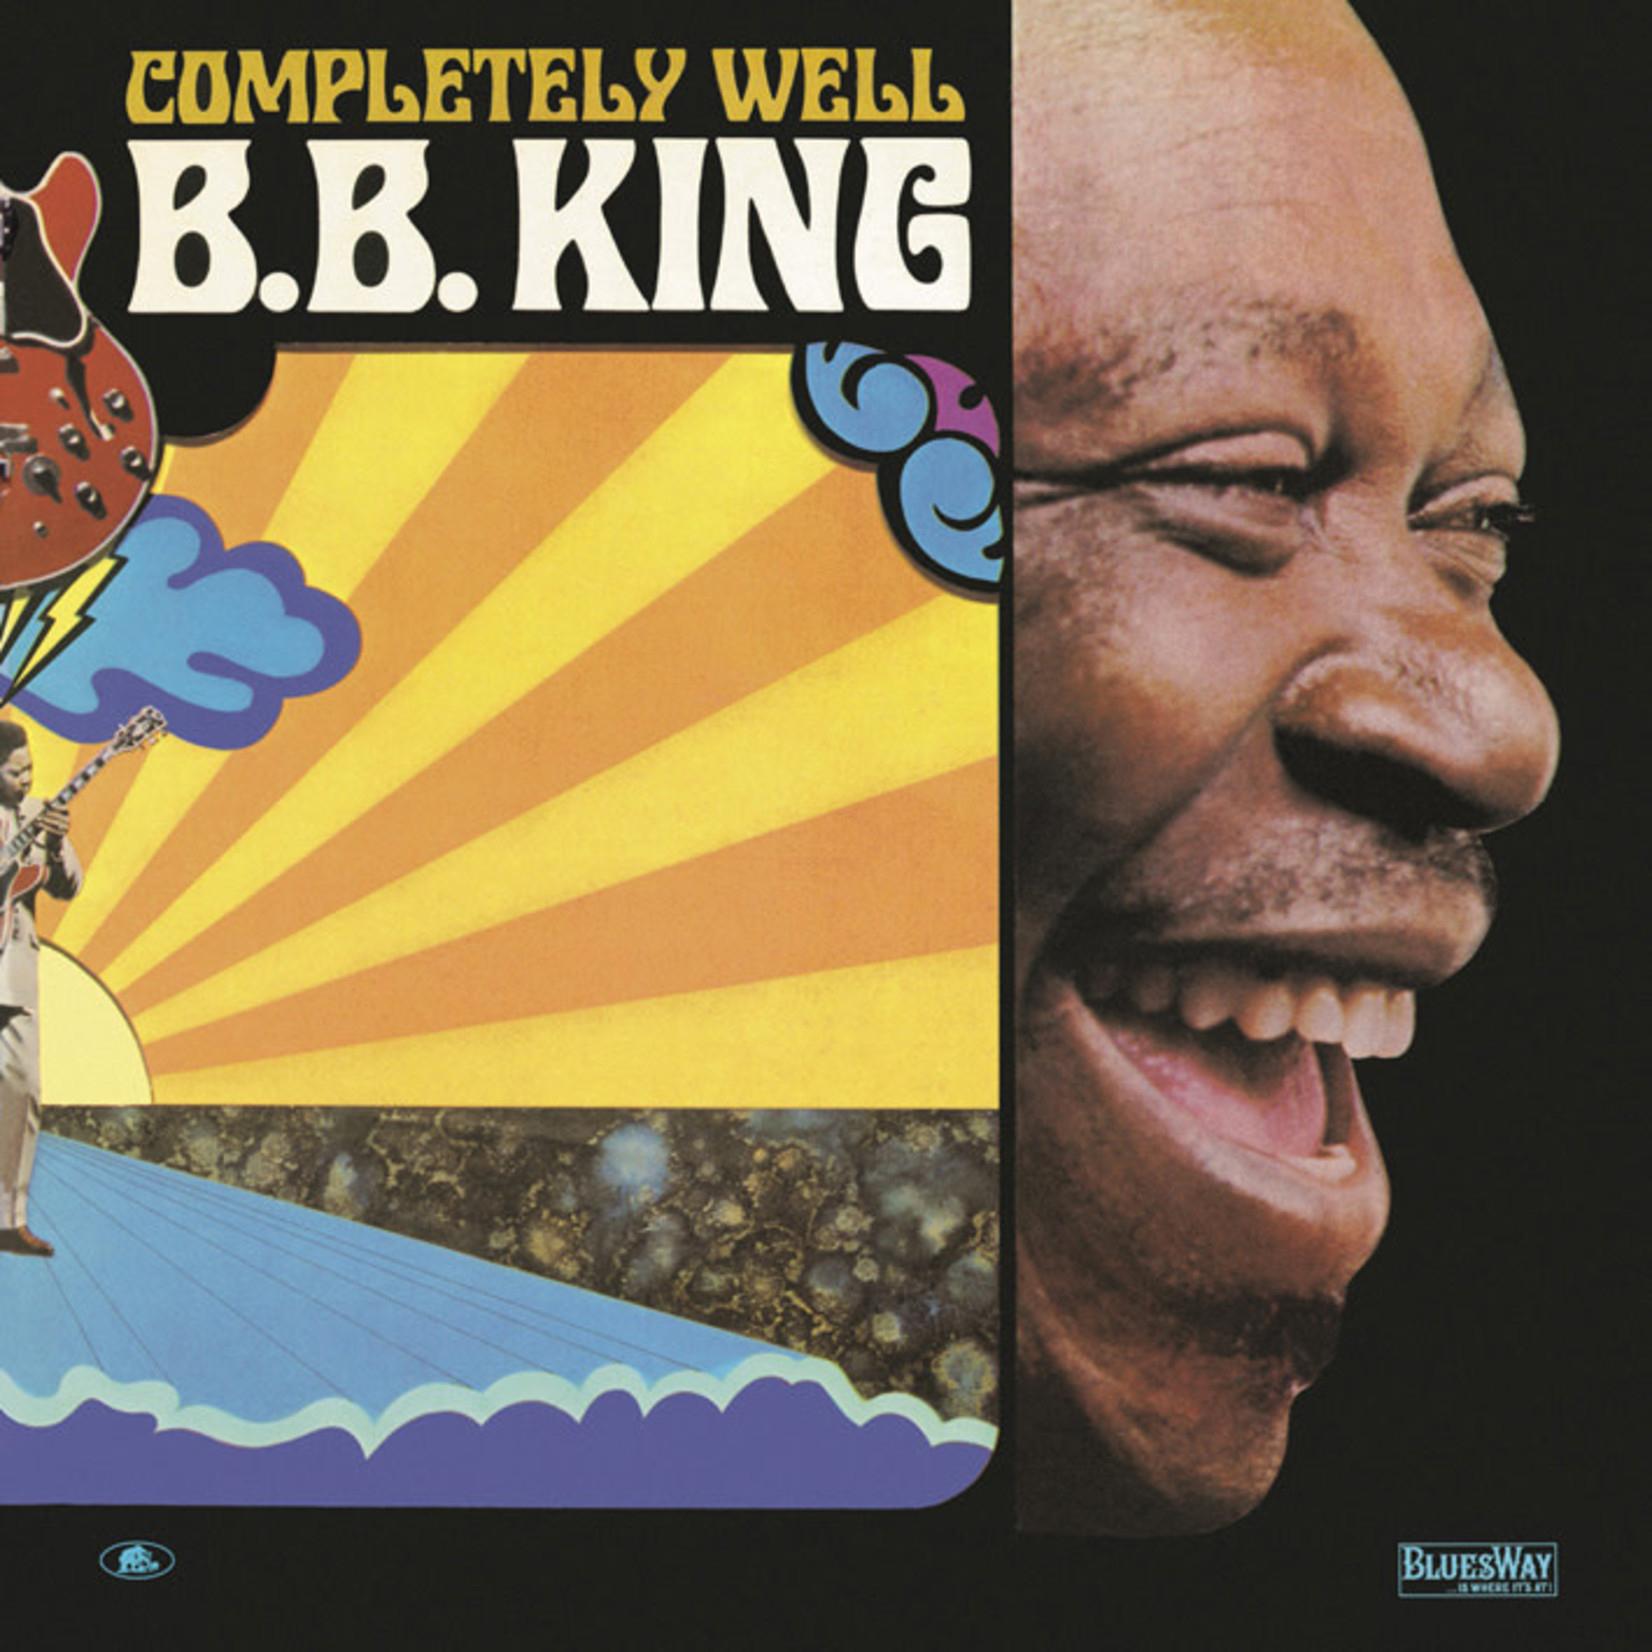 B. B. KING COMPLETELY WELL